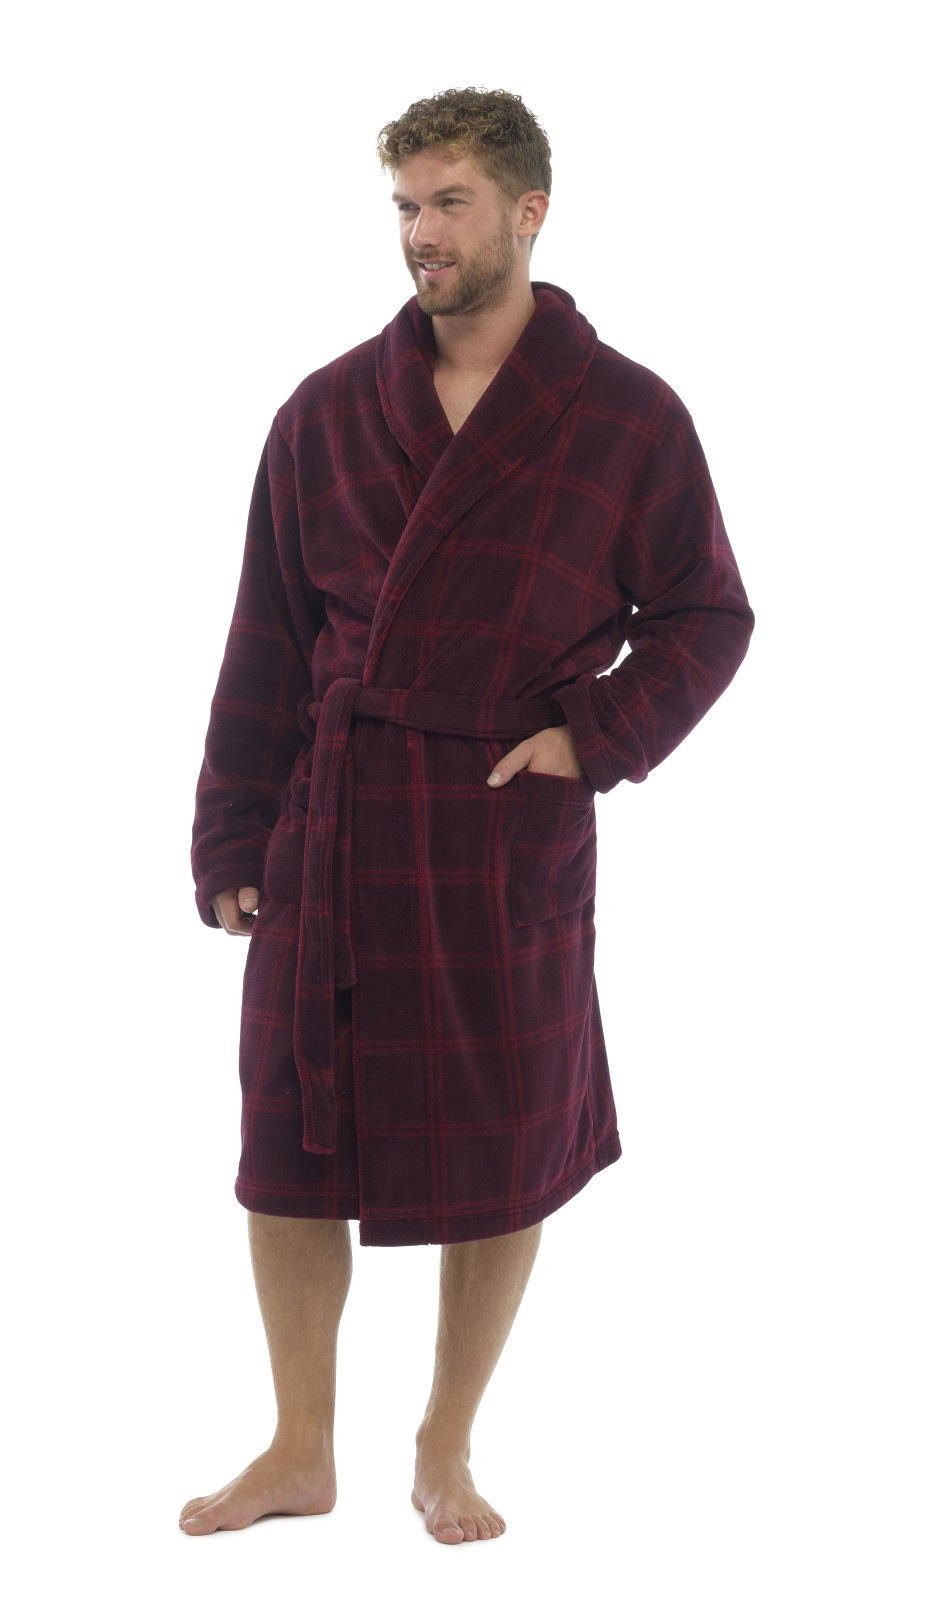 big selection of 2019 2019 clearance sale bottom price Details about Mens Luxury Full Length Velour Fleece Robe Dressing Gown Boys  Gents Size S-XL